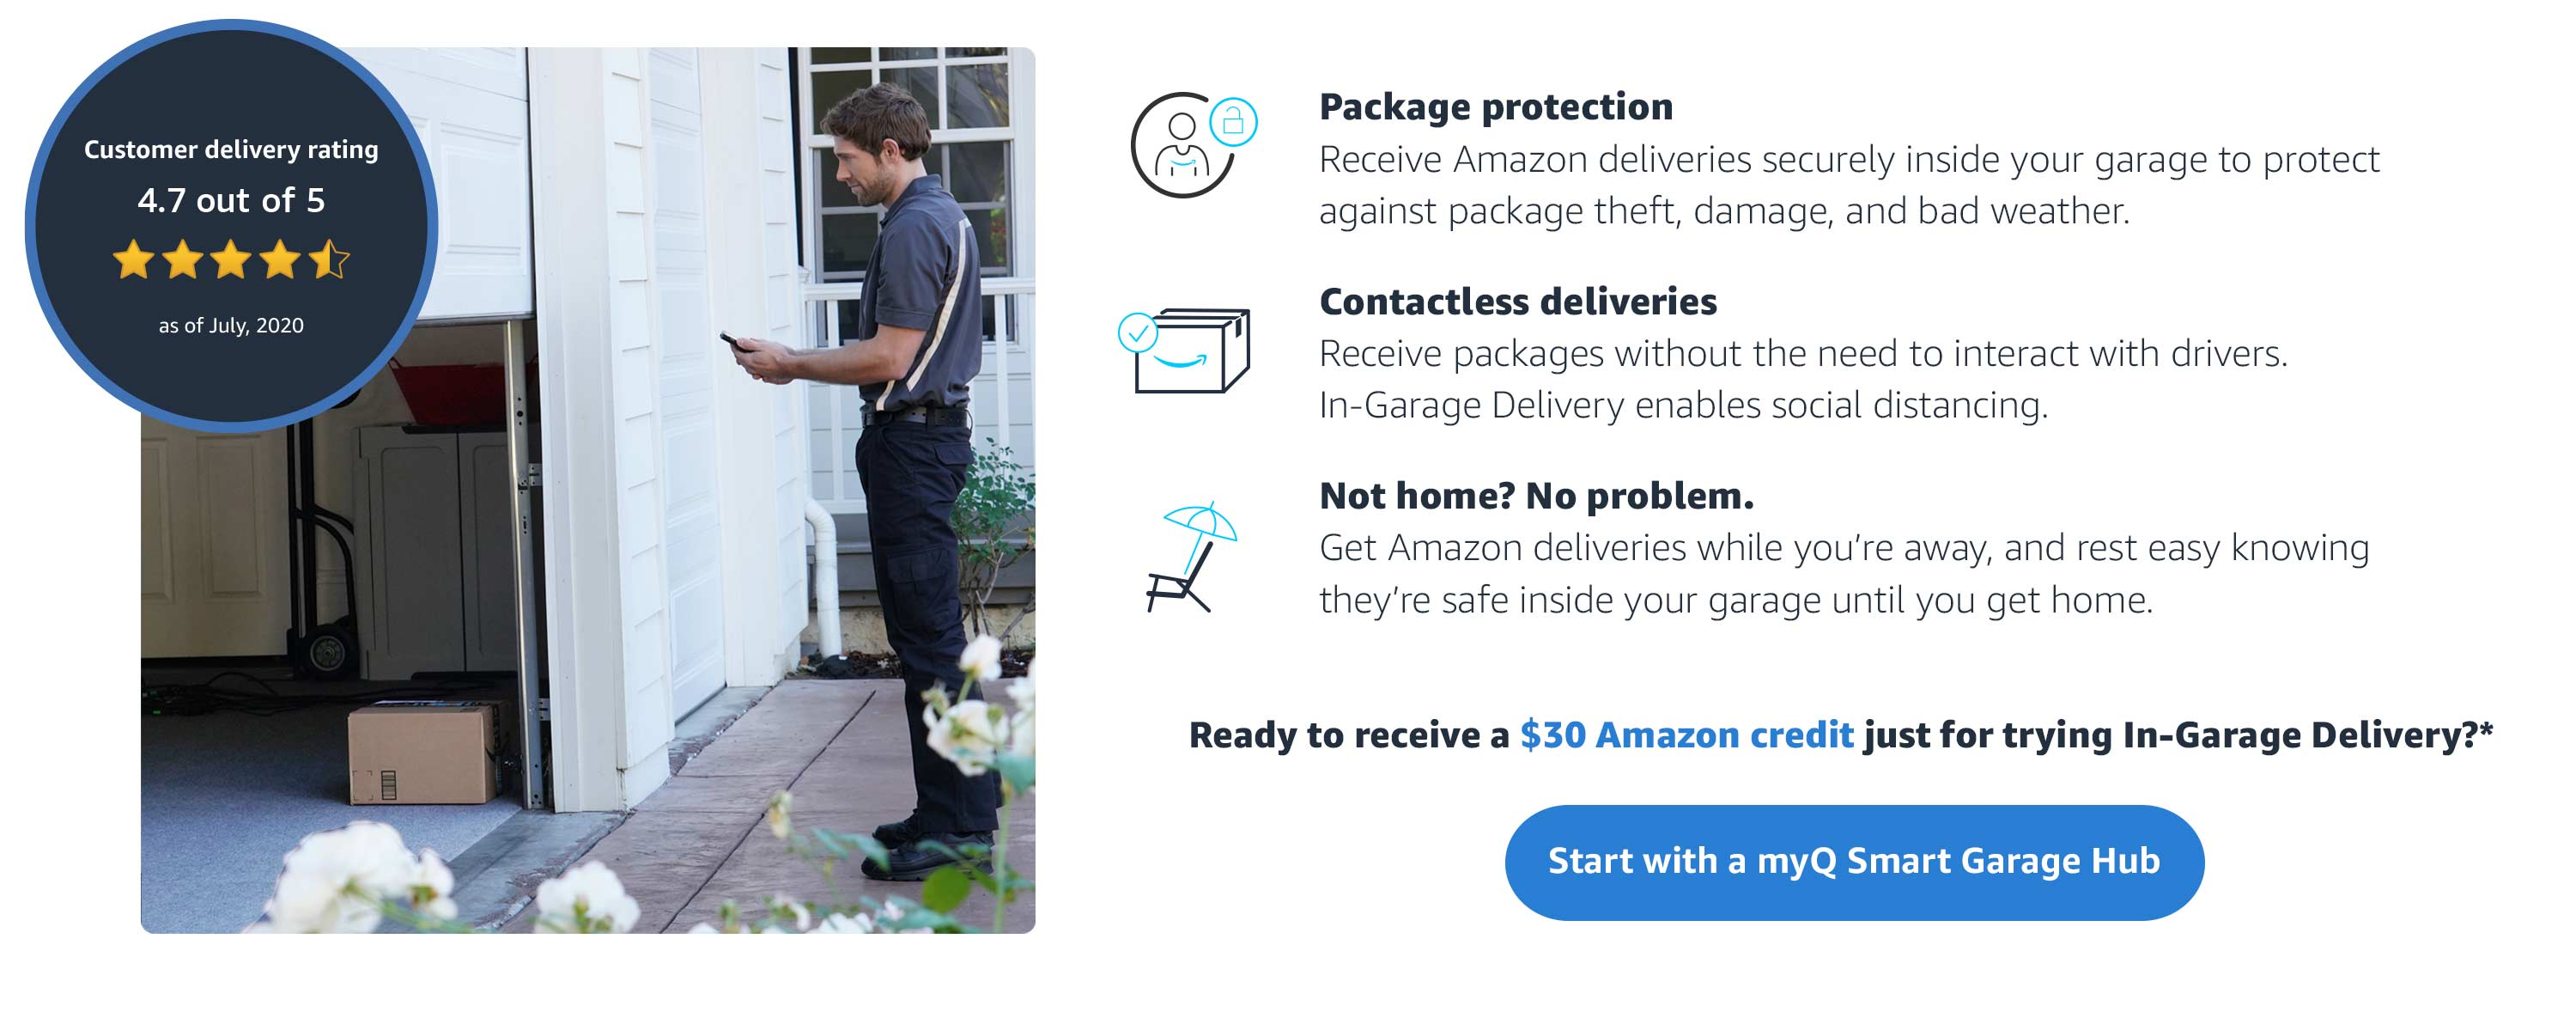 Benefits of Key In-Garage Delivery